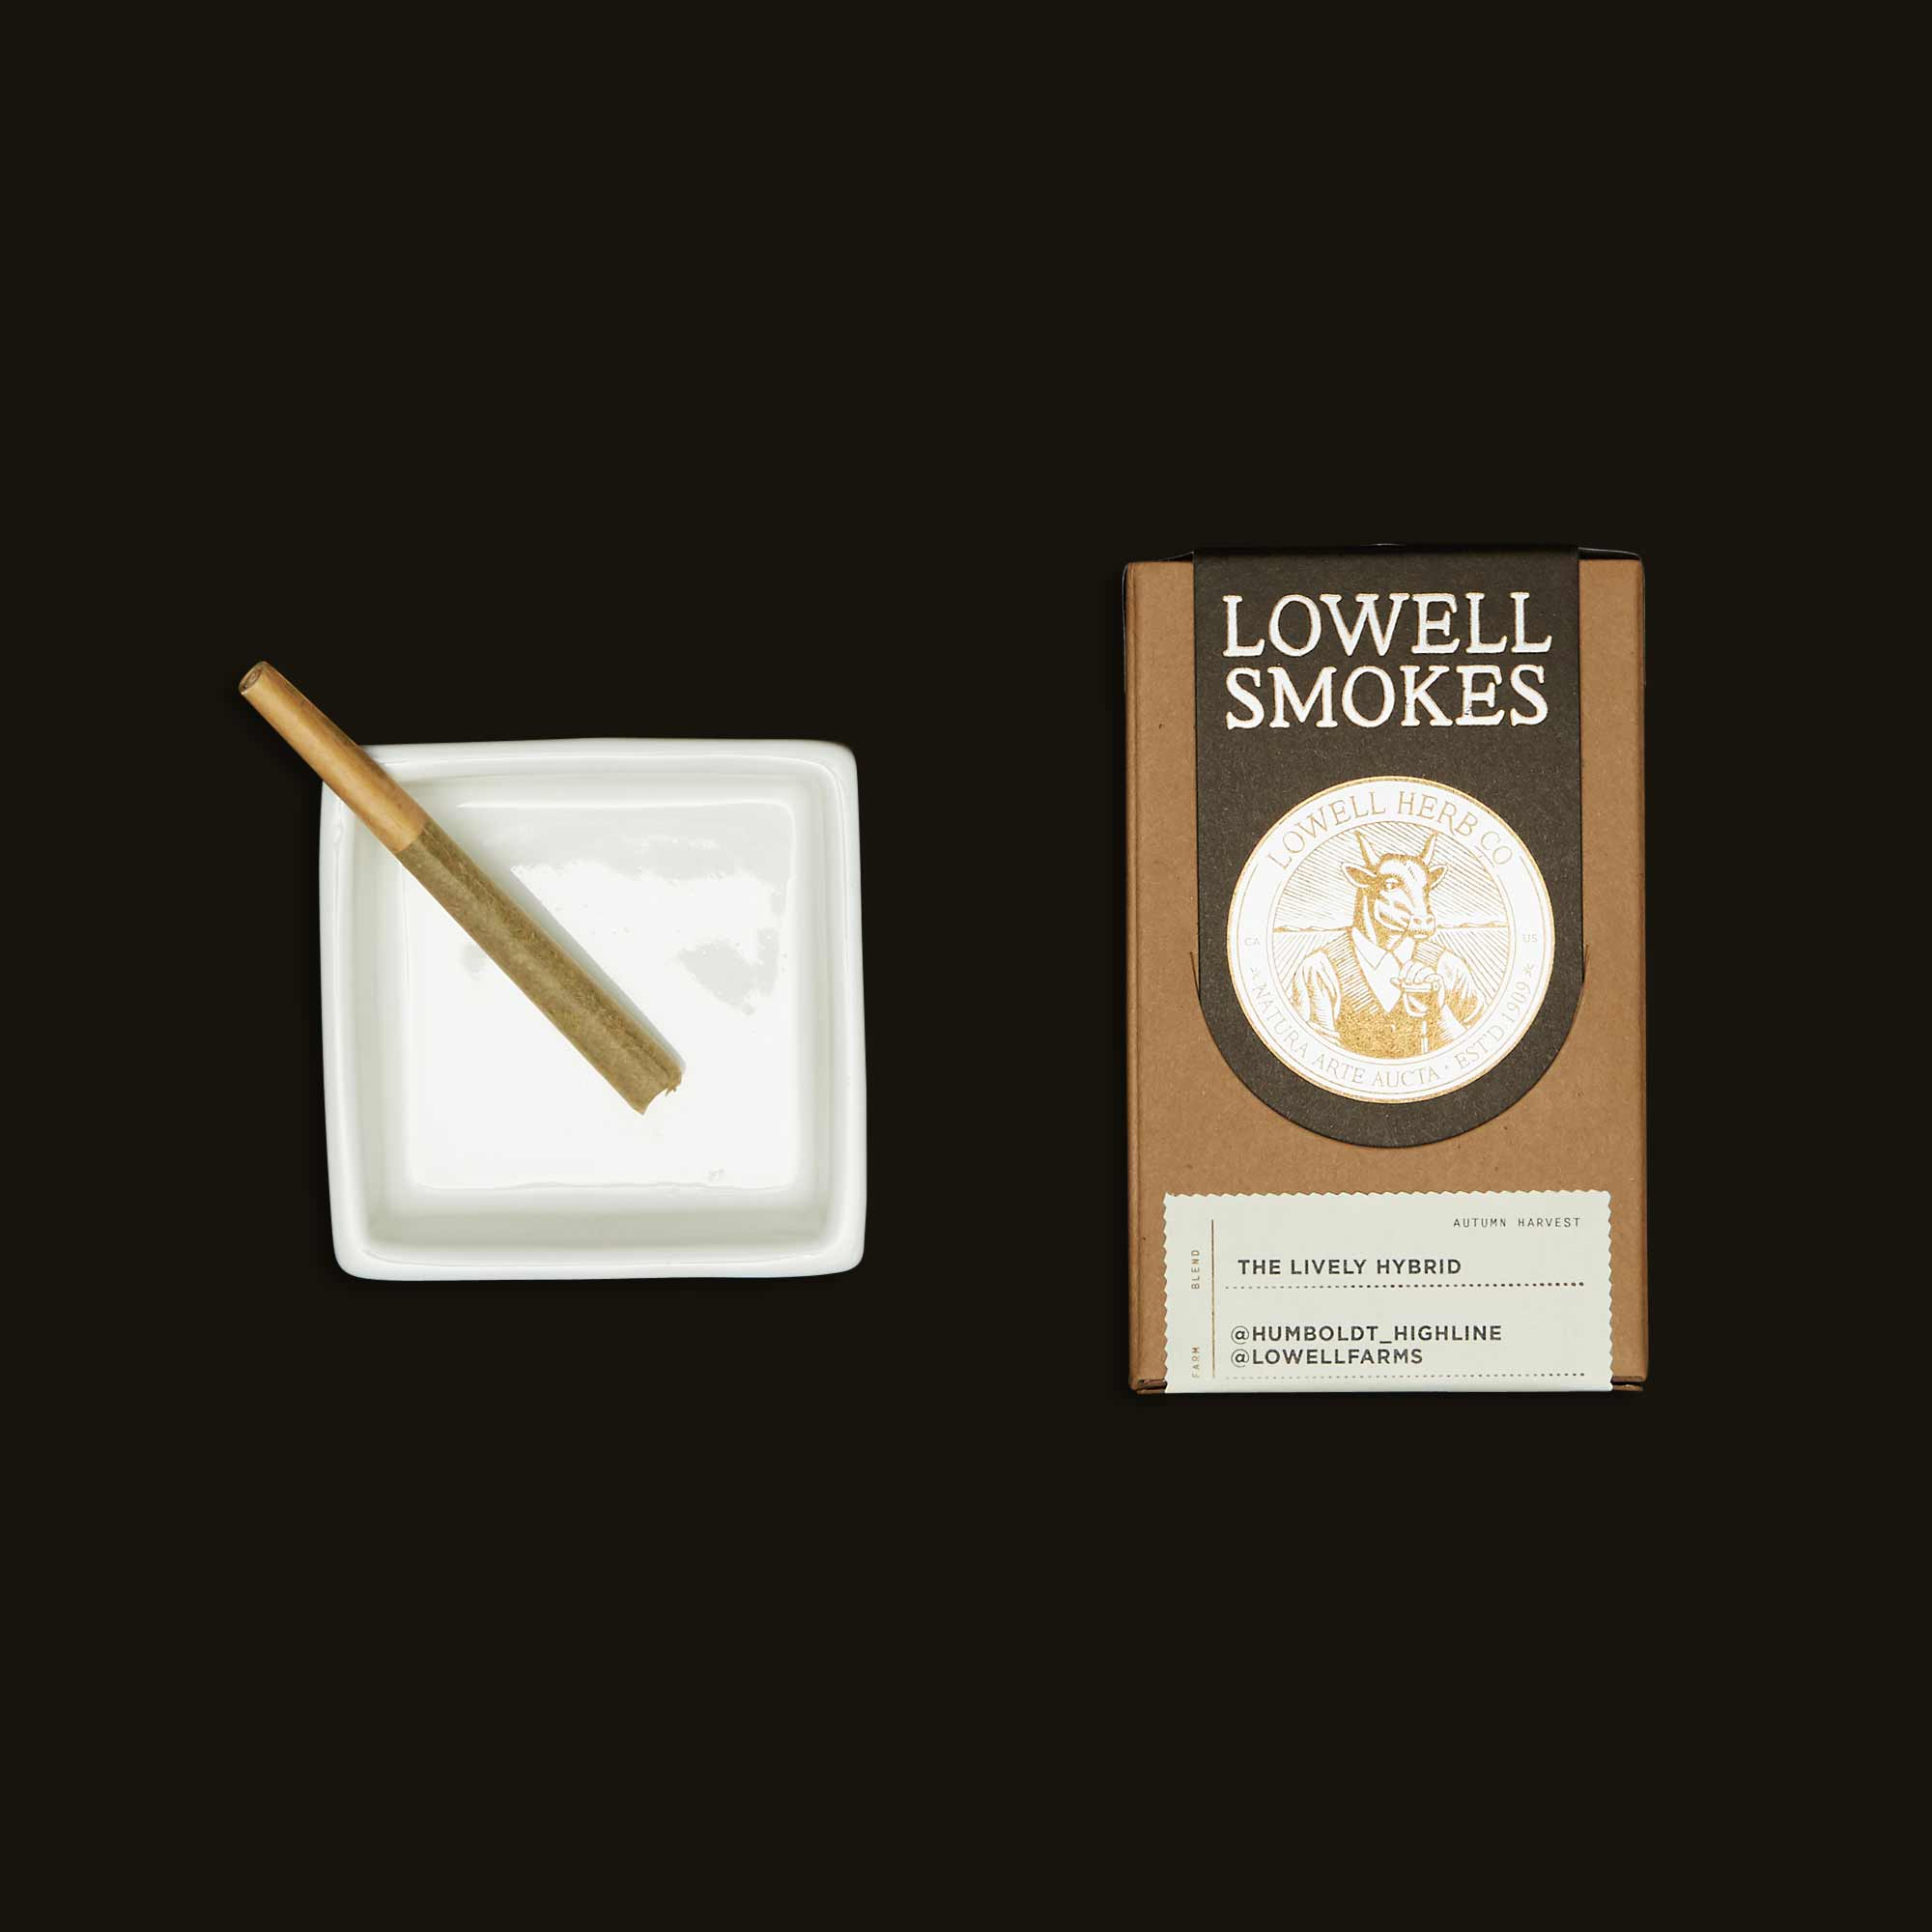 Lowell pre-roll smokes - the Lively Hybrid